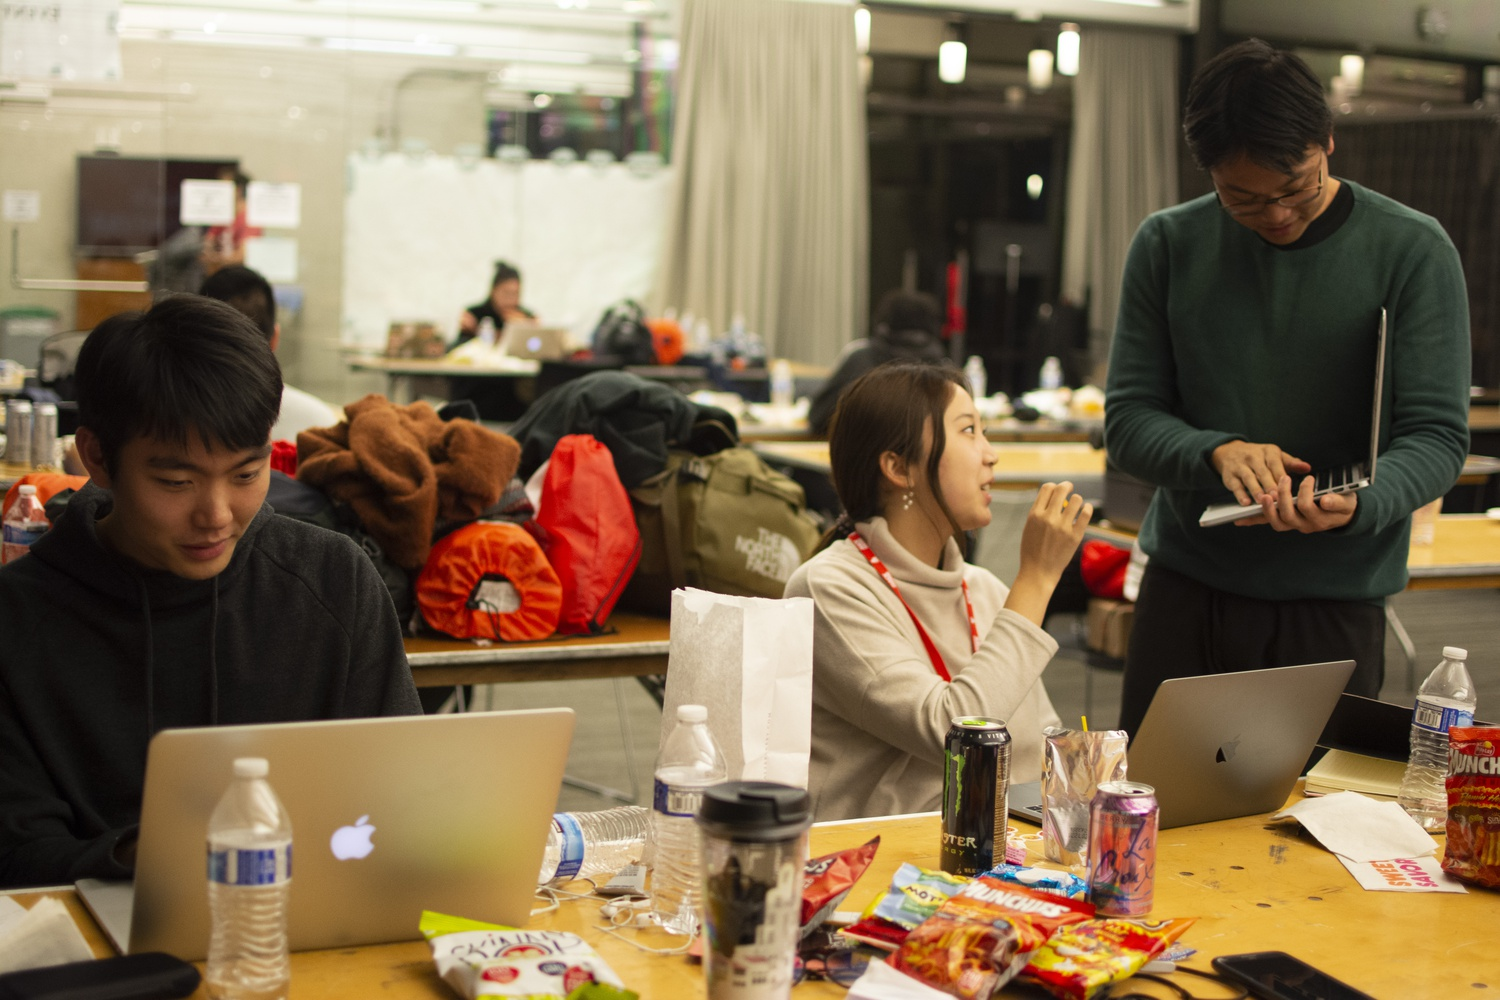 Students from various schools, including RISD and MIT, worked on different projects, including an AI-based app that would send users self-care reminders.